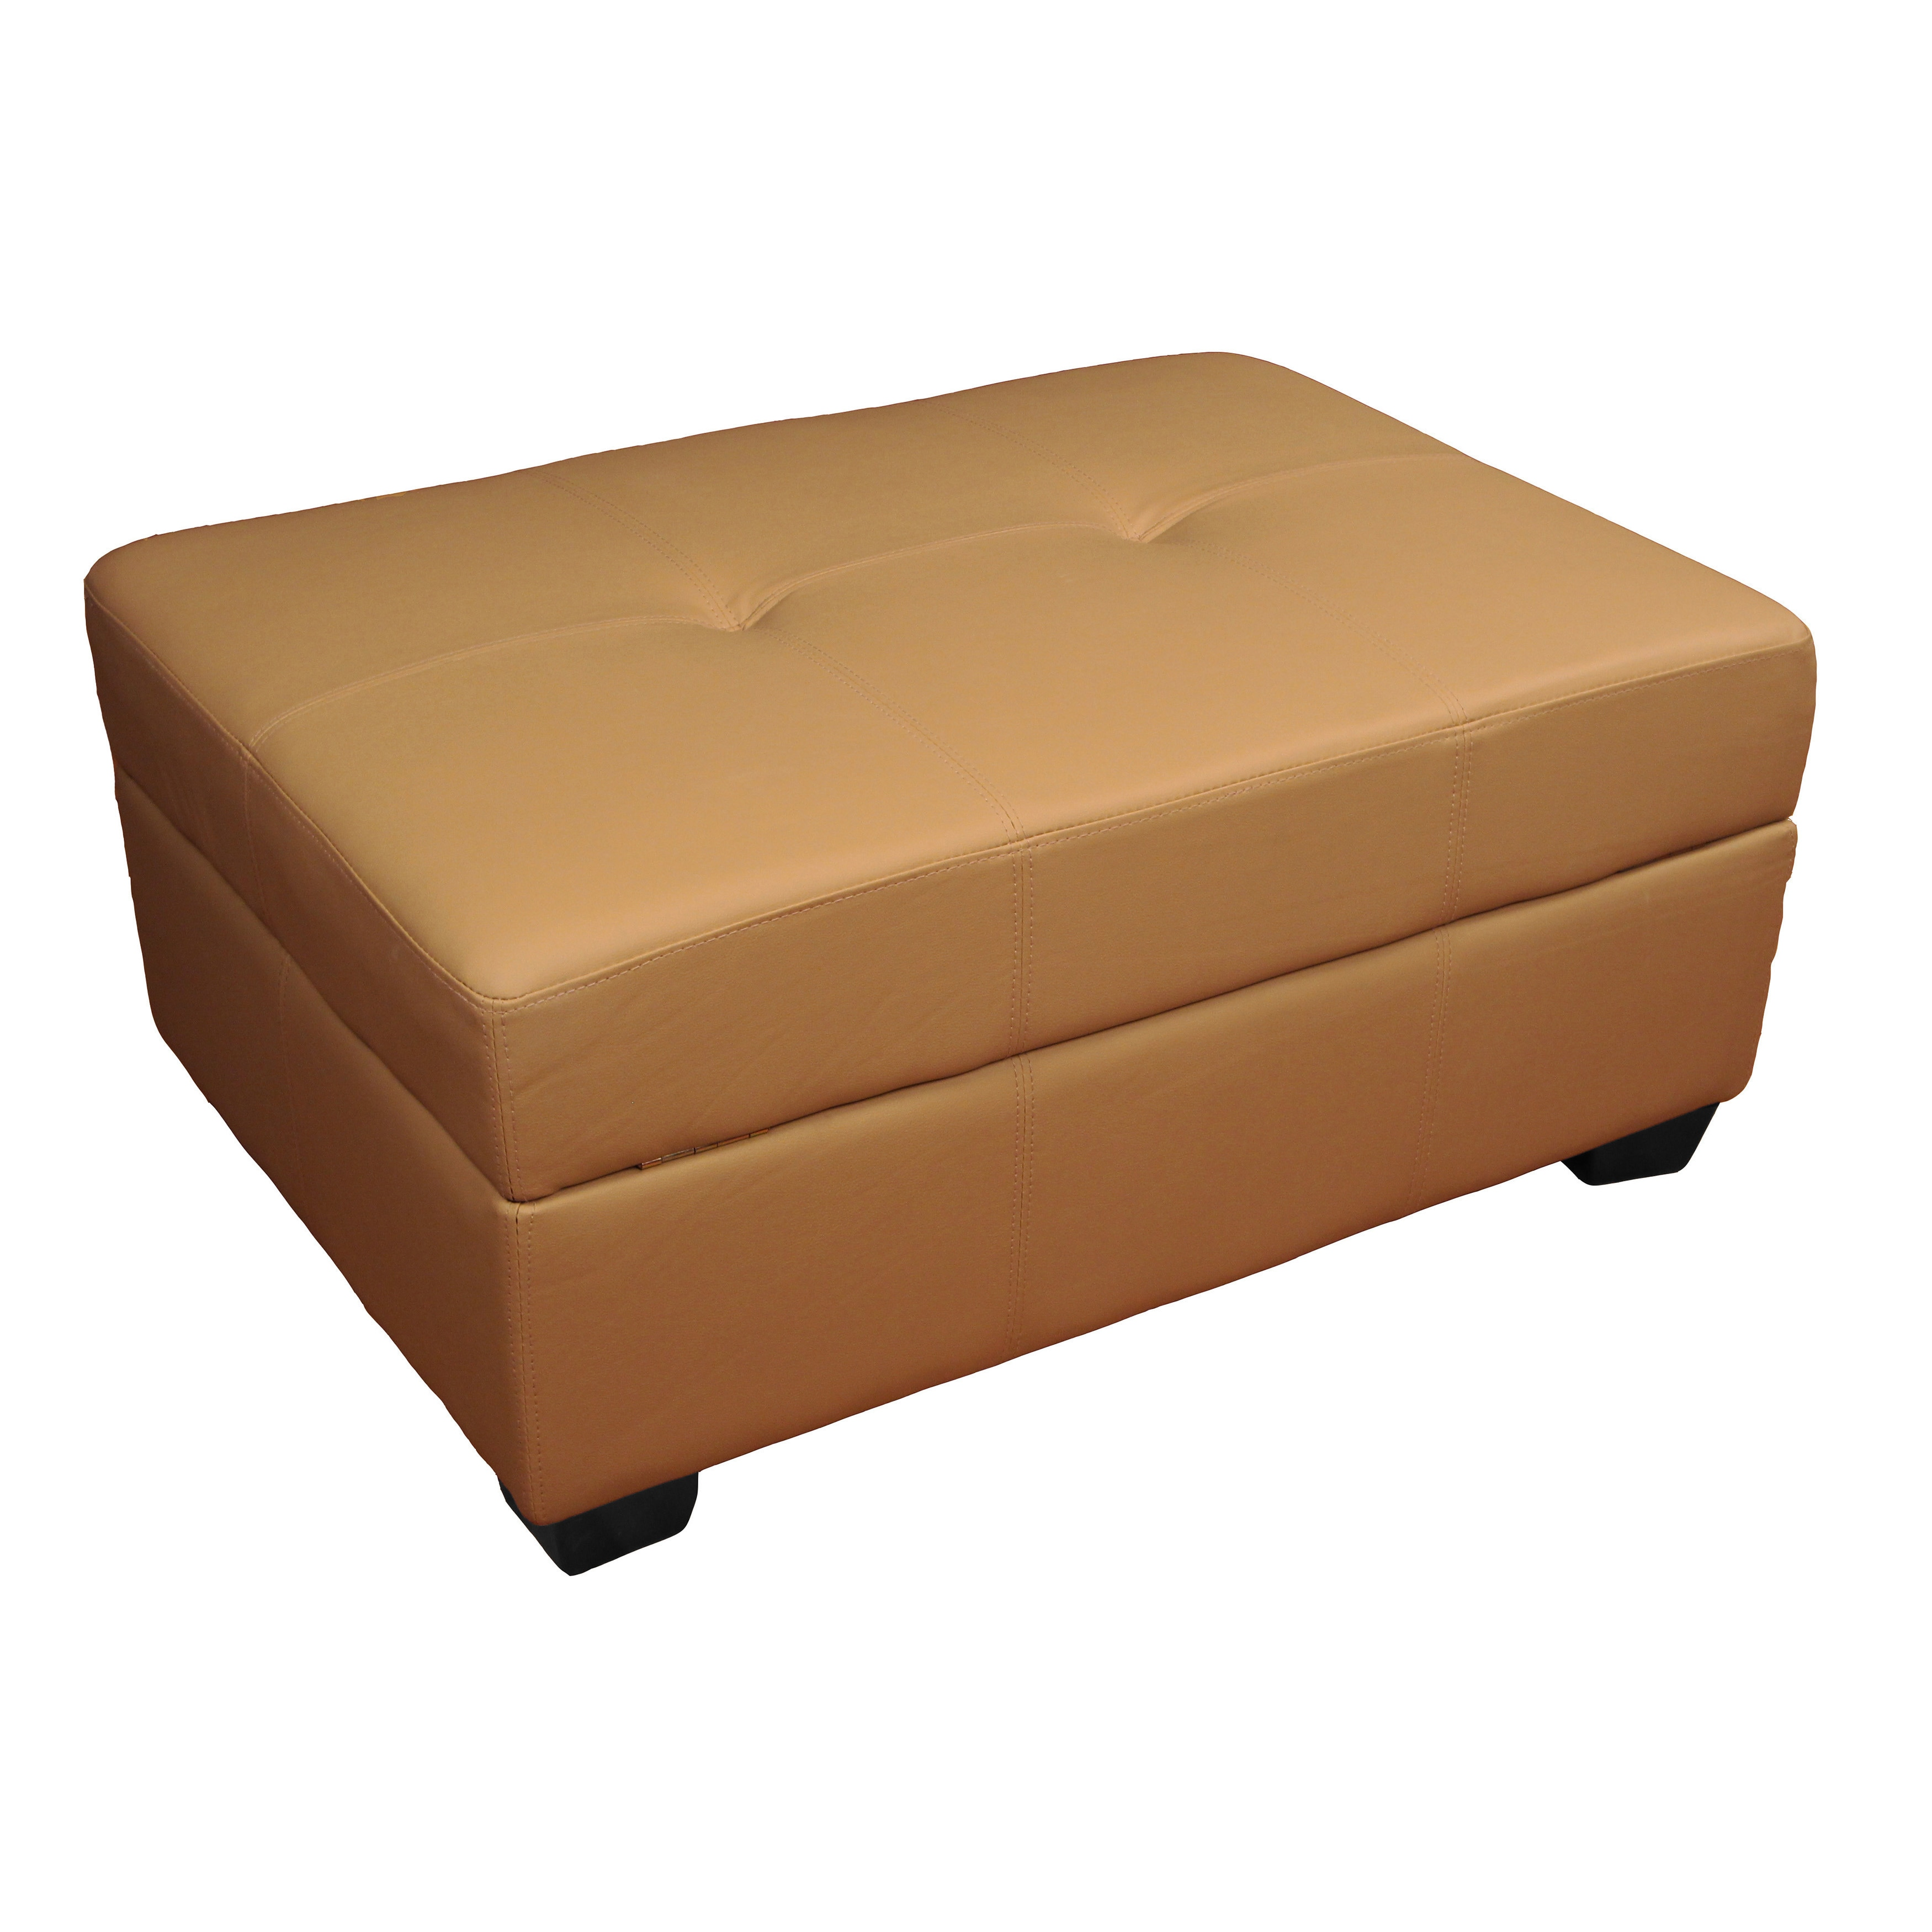 bench benches cbr simpli chocolate bedroom home brown p storage ottoman westchester